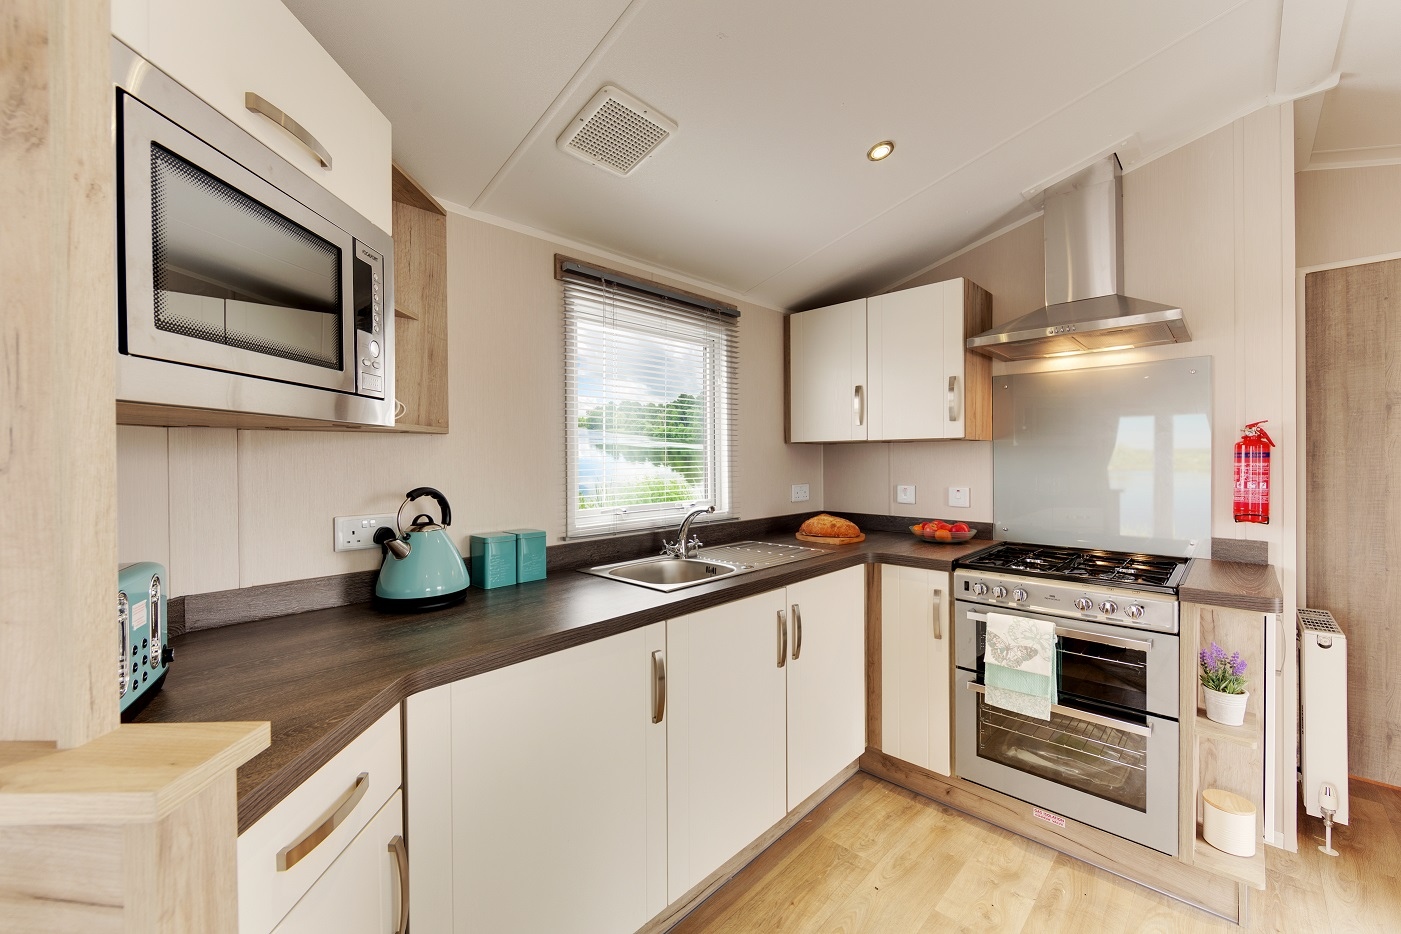 Willerby Skye - 3 Bedrooms: New Static Caravans and Holiday Homes for Sale, Langley Moor, Durham Image 2